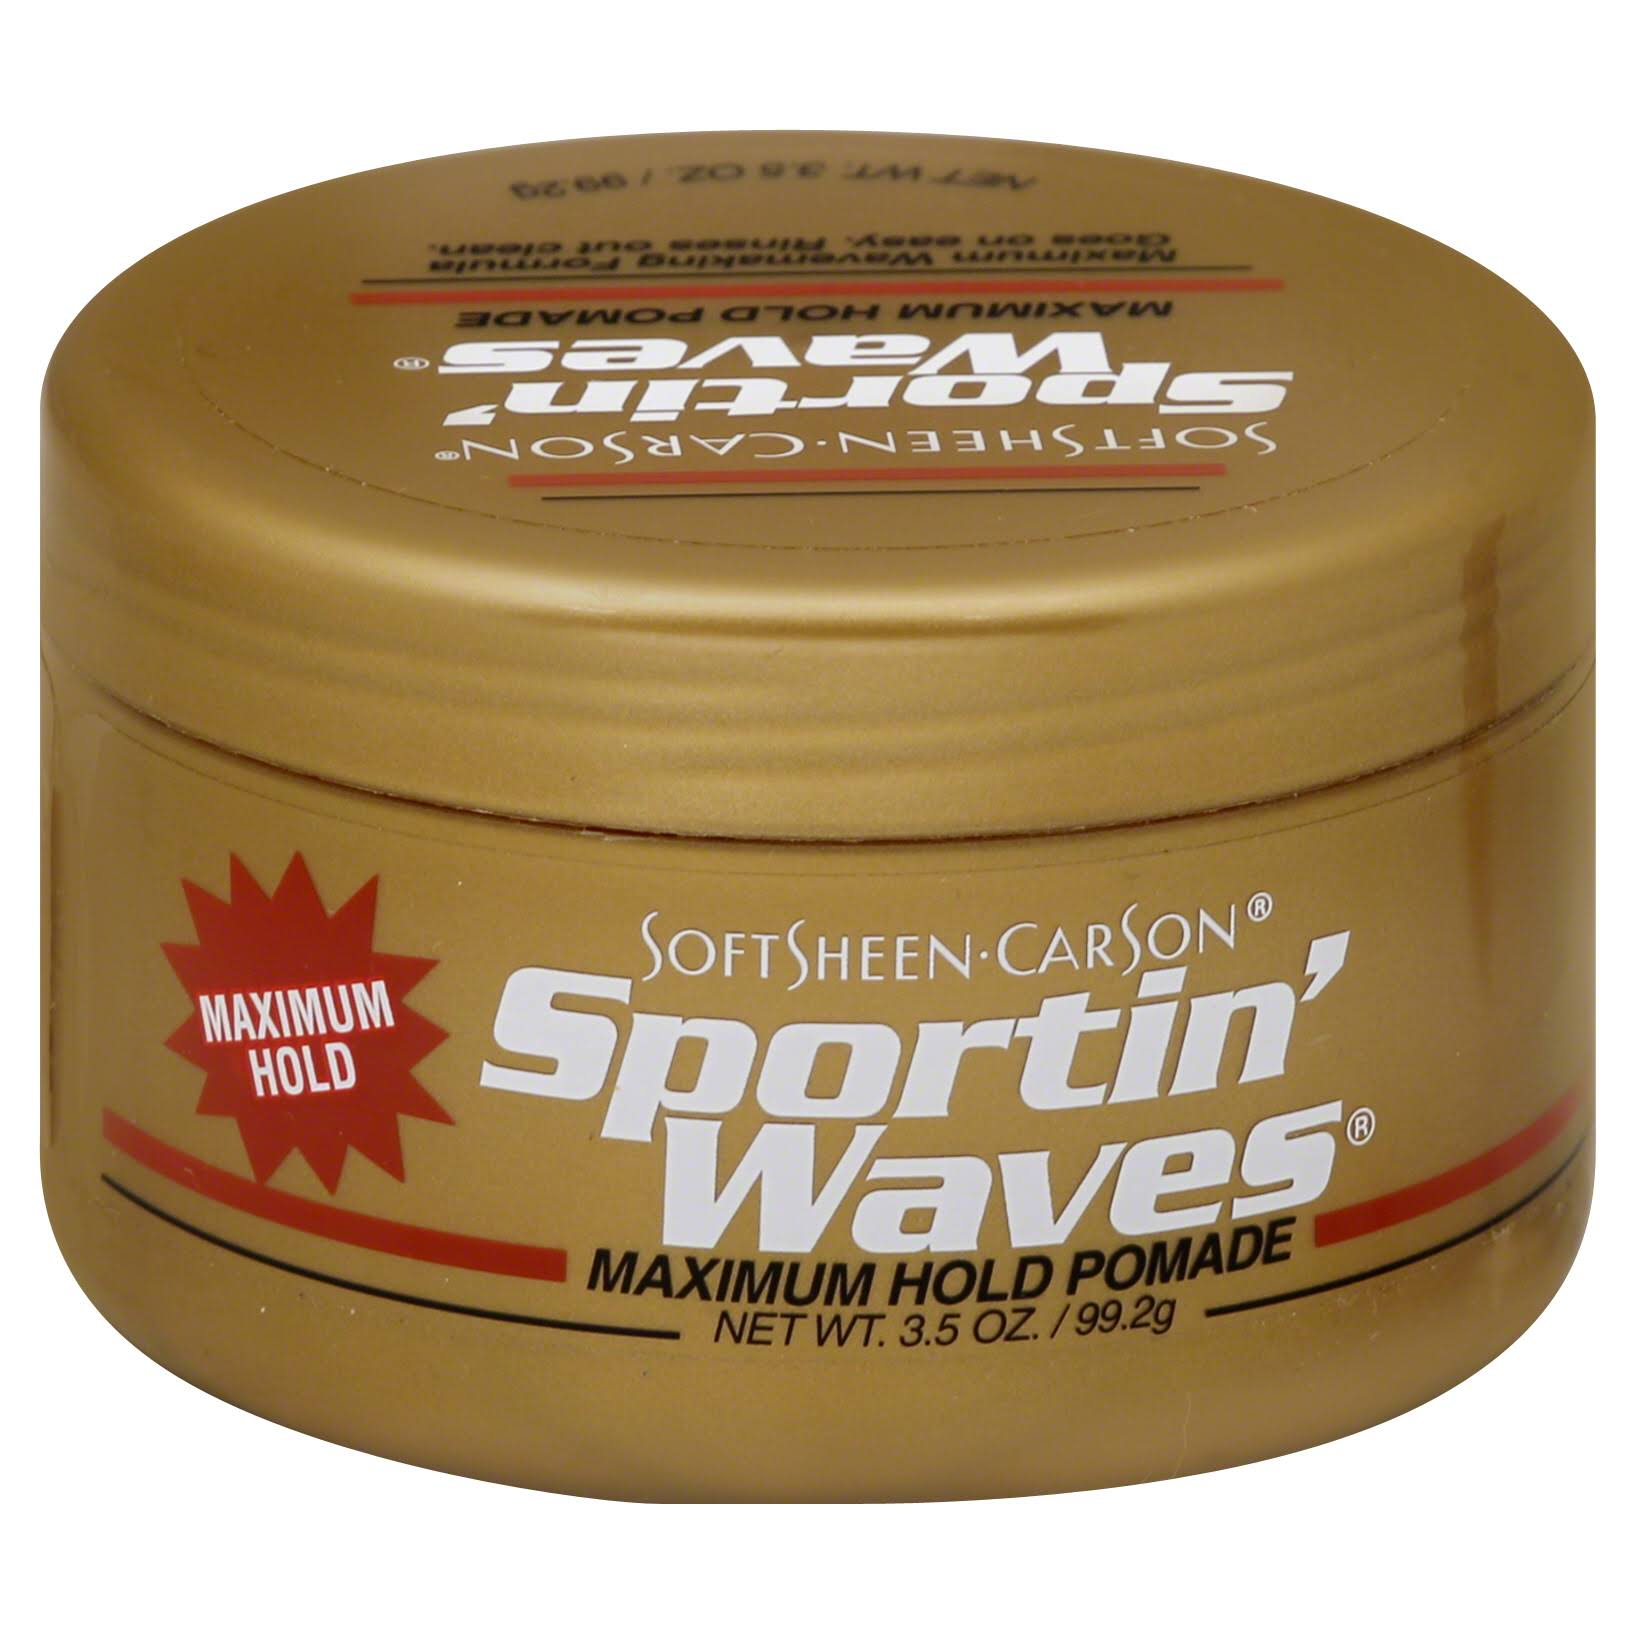 SoftSheen-Carson Sportin Waves Maximum Hold Pomade - 3.5oz